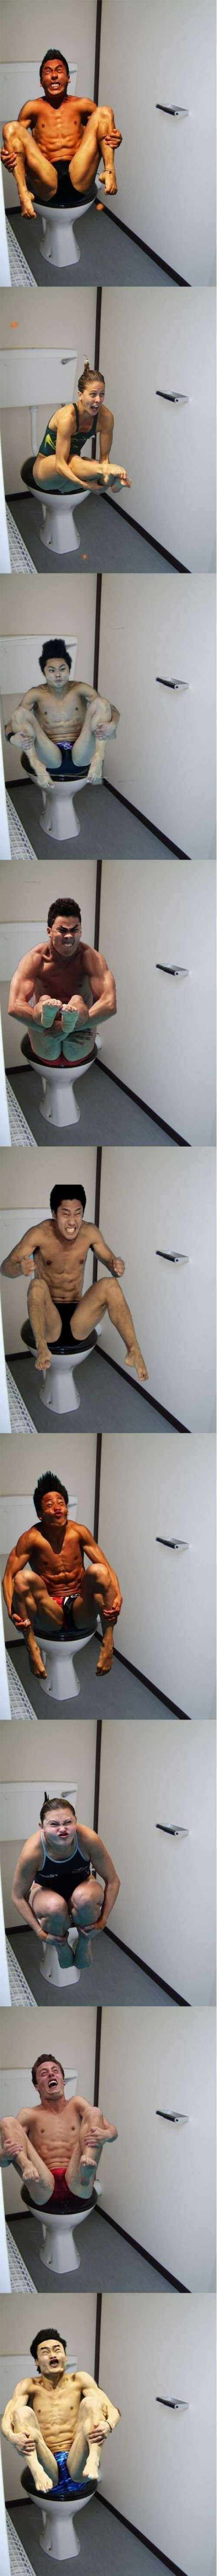 Olympic divers photo shopped on toilets. OMG CANT BREATHE!!!!!!!